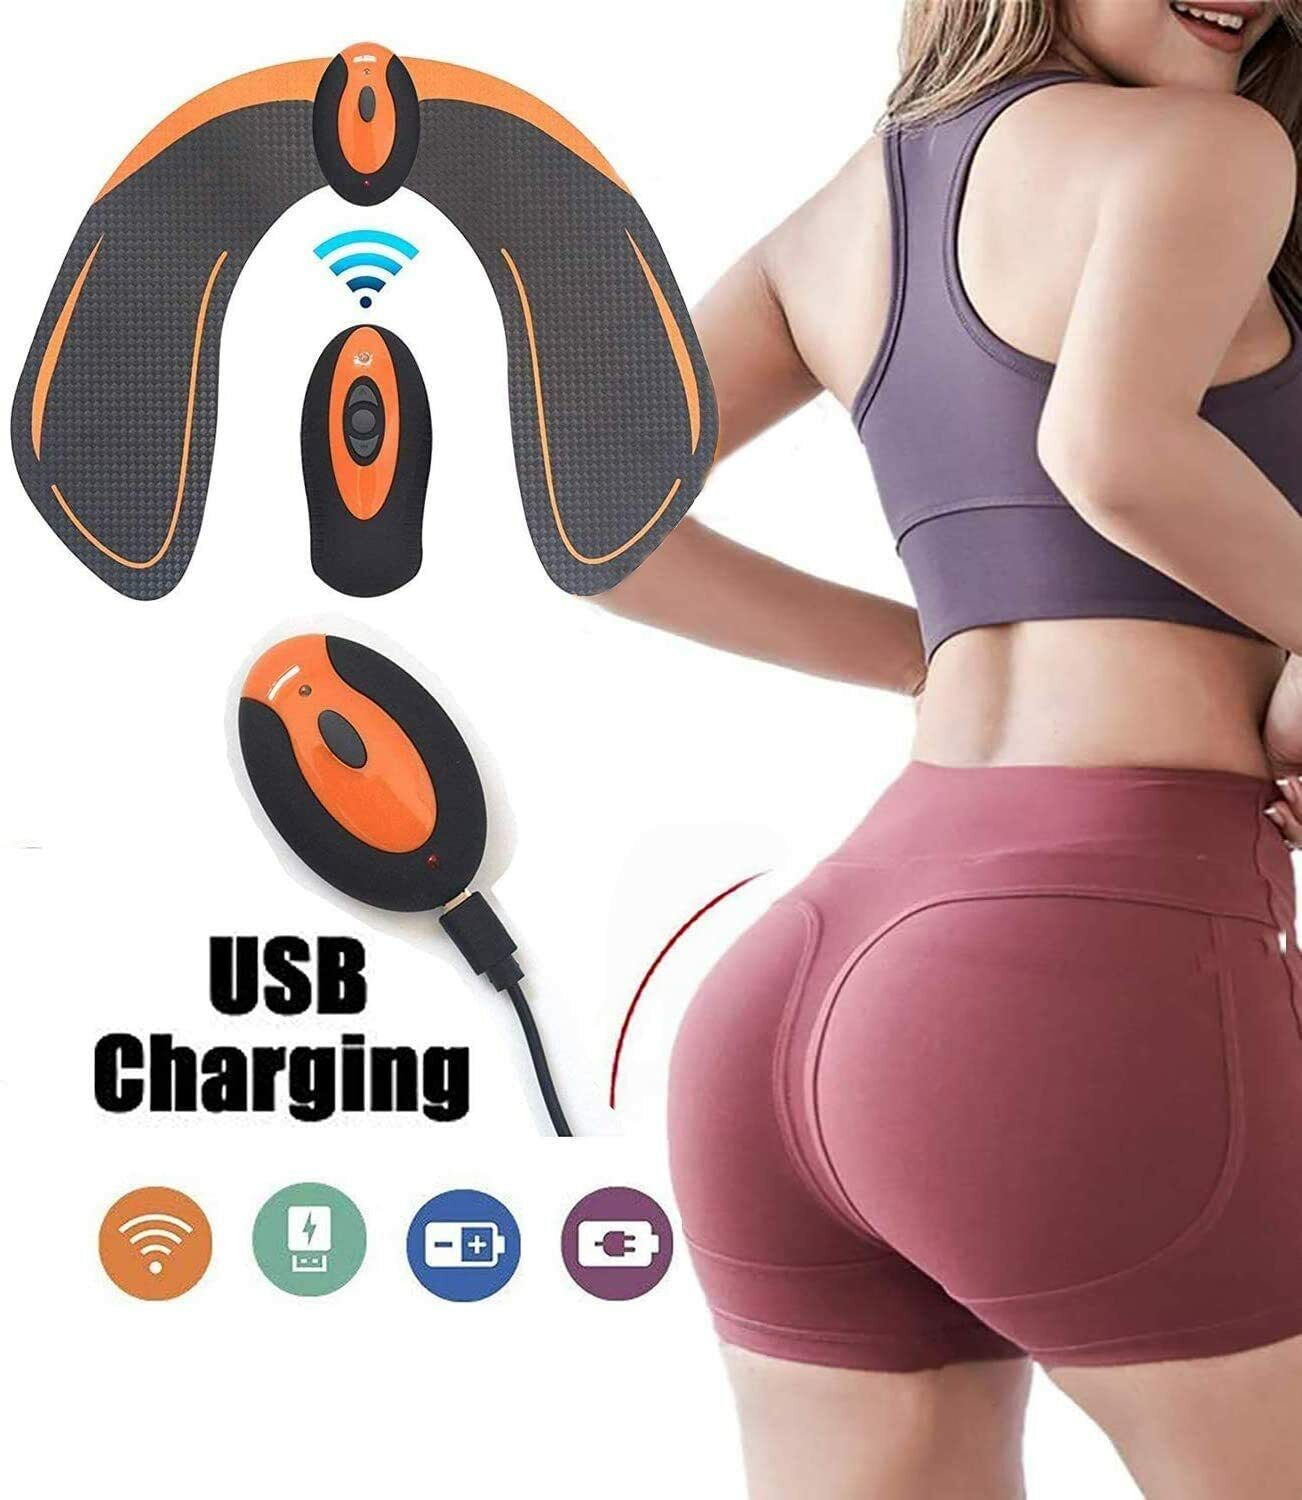 USB Recharge Abs Stimulator Hip Trainer Electronic Backside